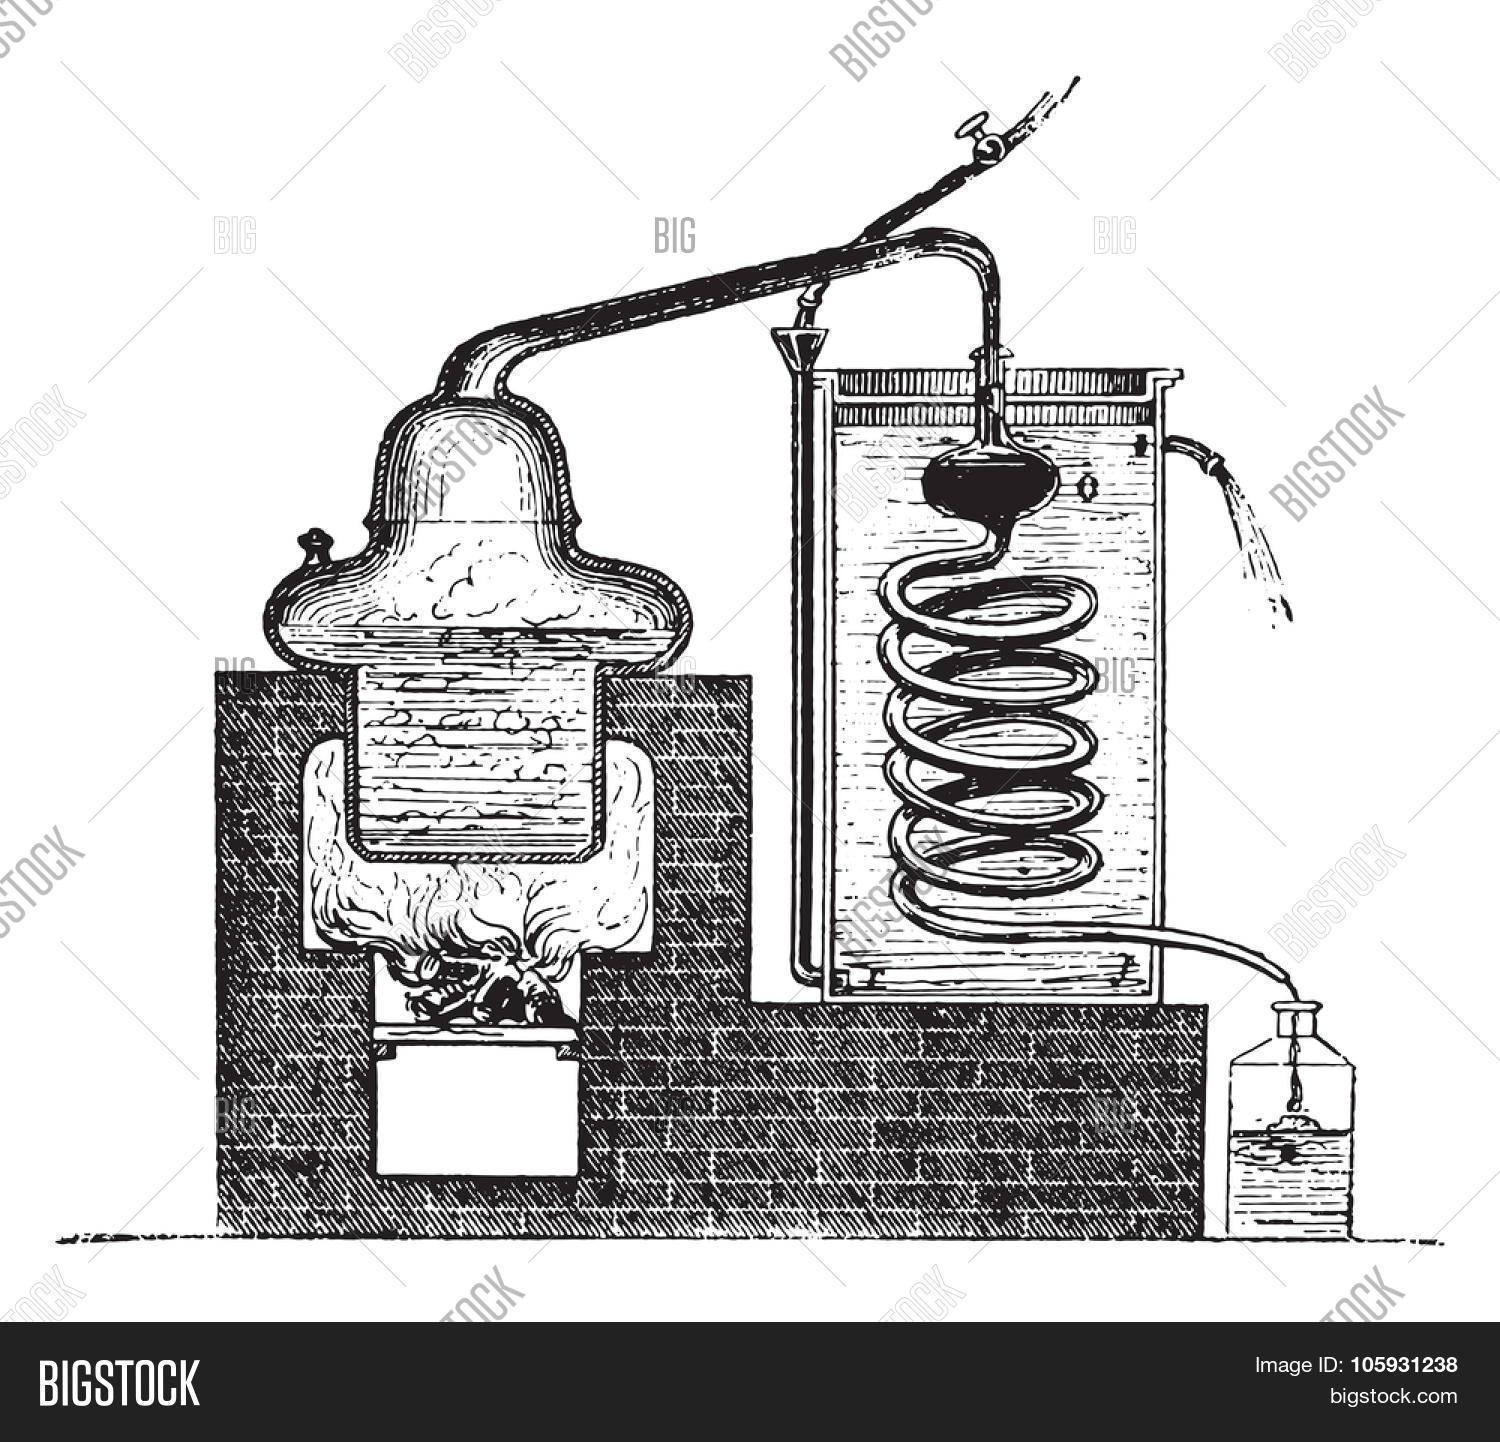 Distilling Apparatus Vector Photo Free Trial Bigstock Distillation Diagram Vintage Engraved Illustration